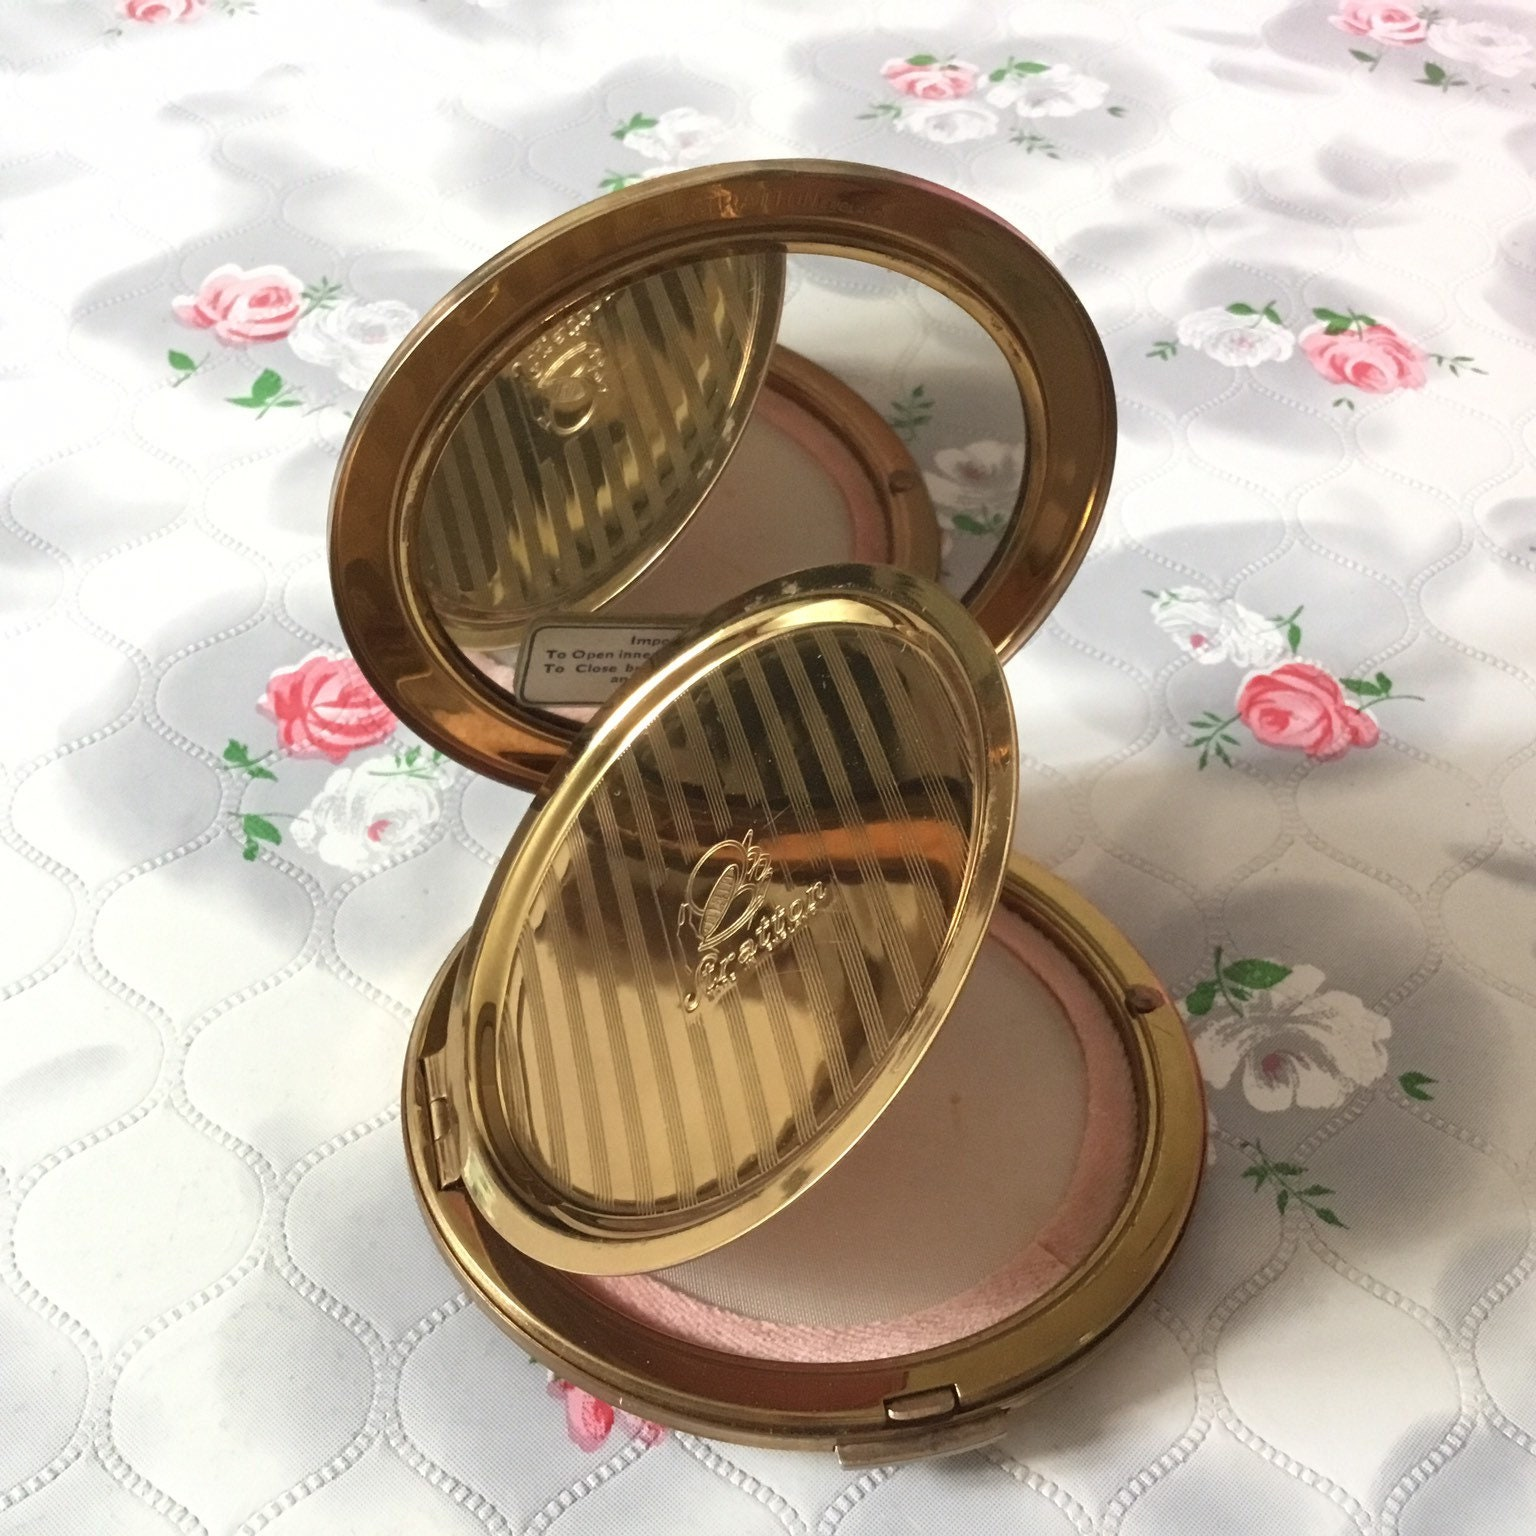 Stratton ballet powder compact with ballet dancers by Cecil Golding vintage Marquis ballerina makeup mirror c 1950s